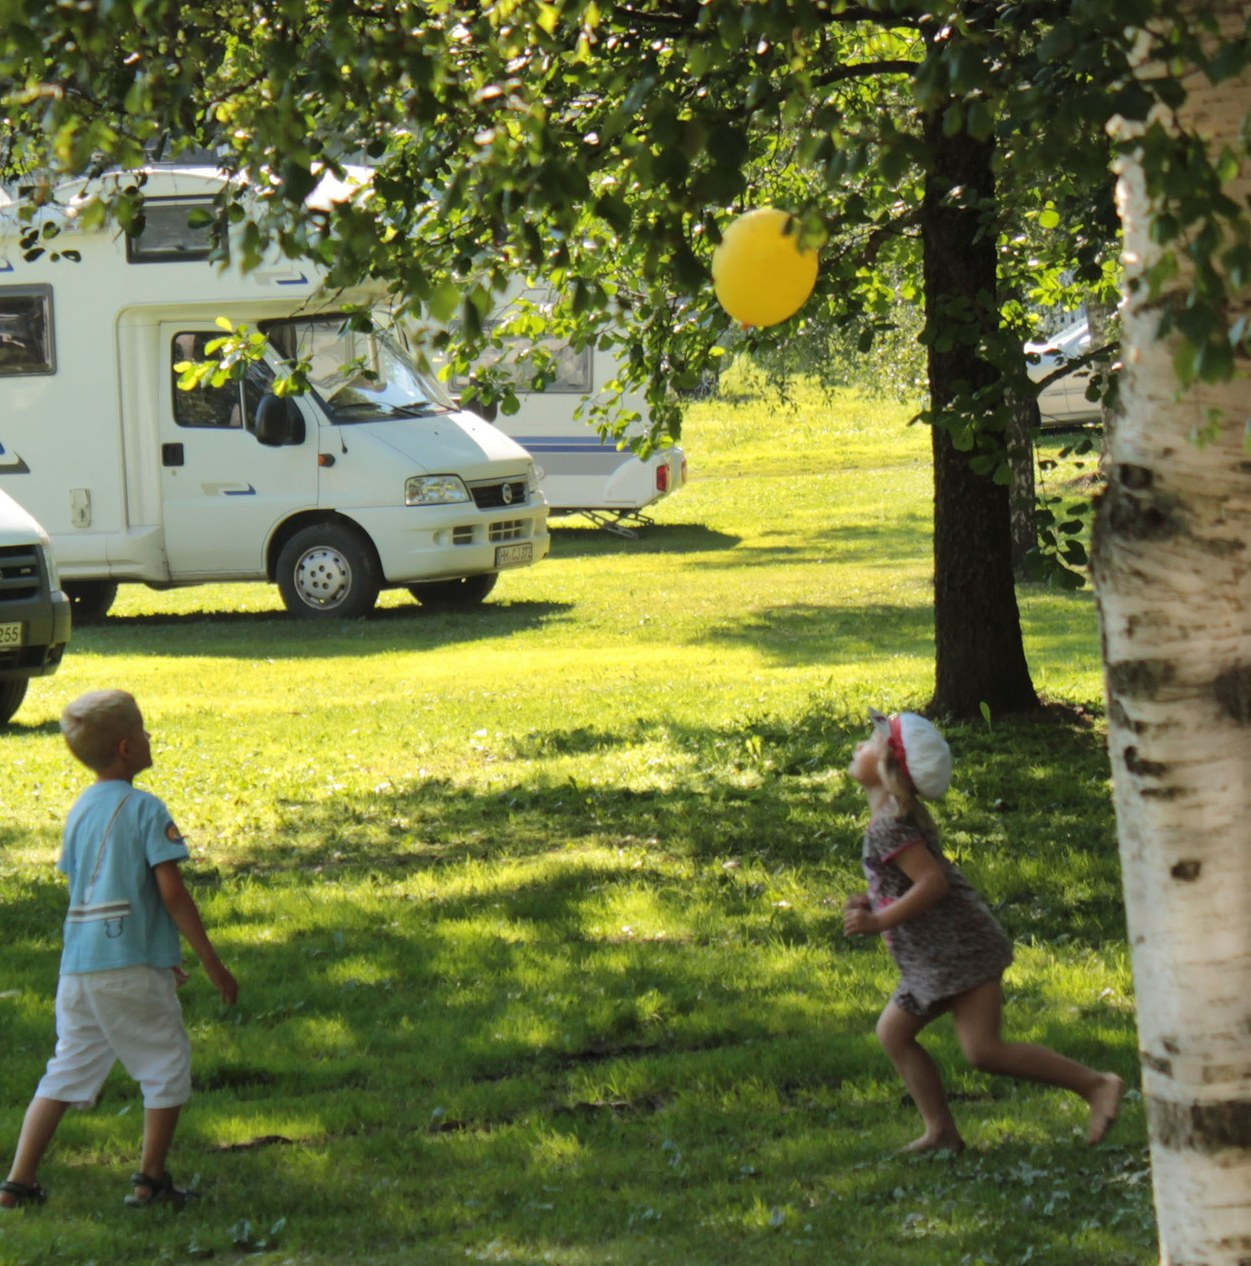 Camping in Finland: civilized outdoor recreation 66